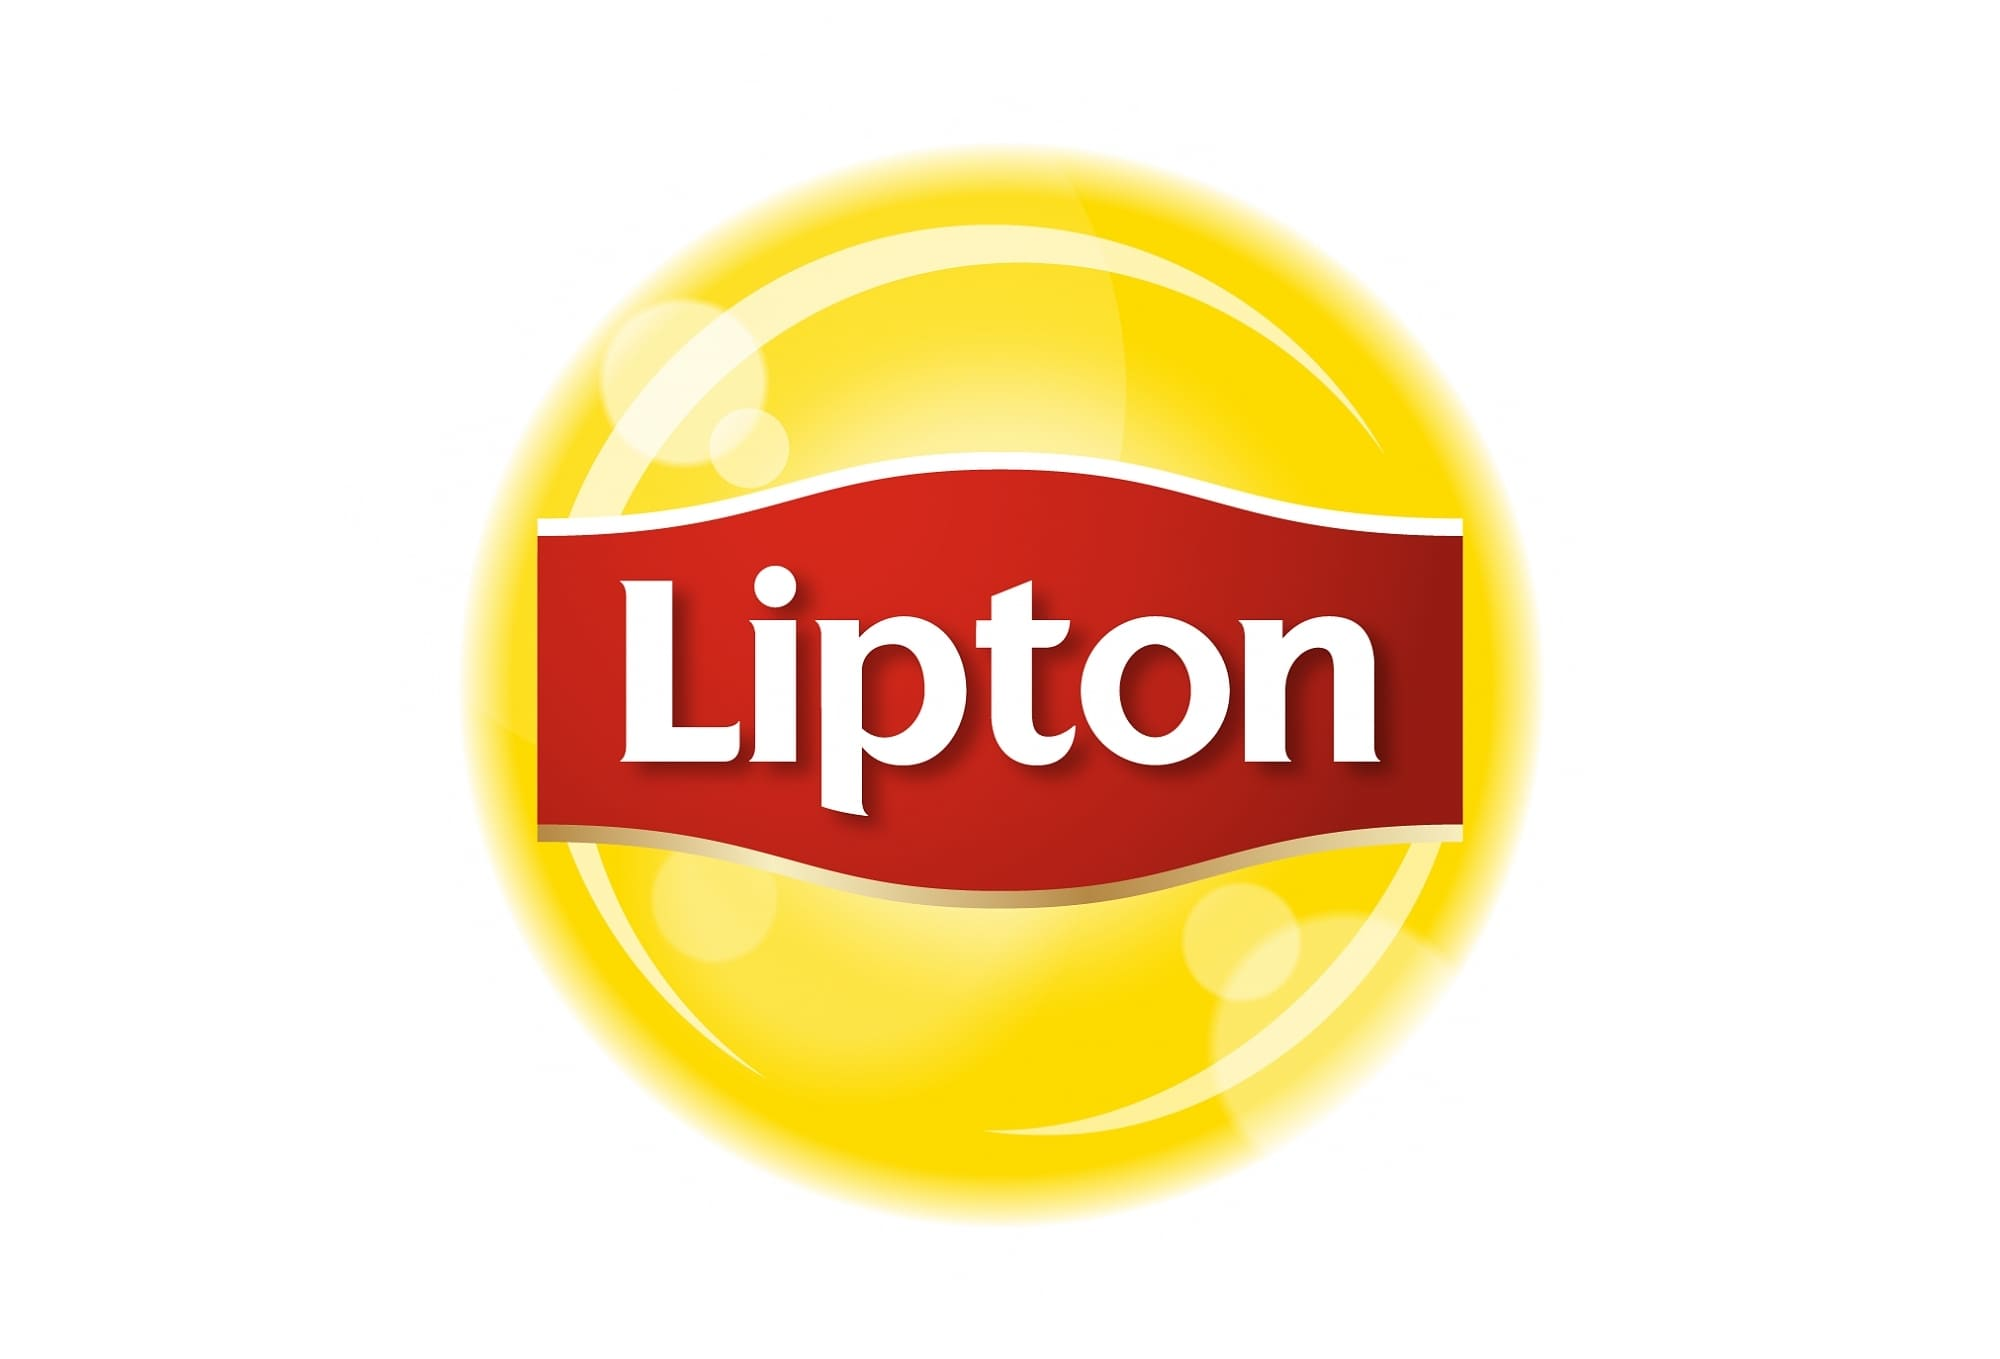 lipton logo lipton symbol meaning history and evolution. Black Bedroom Furniture Sets. Home Design Ideas